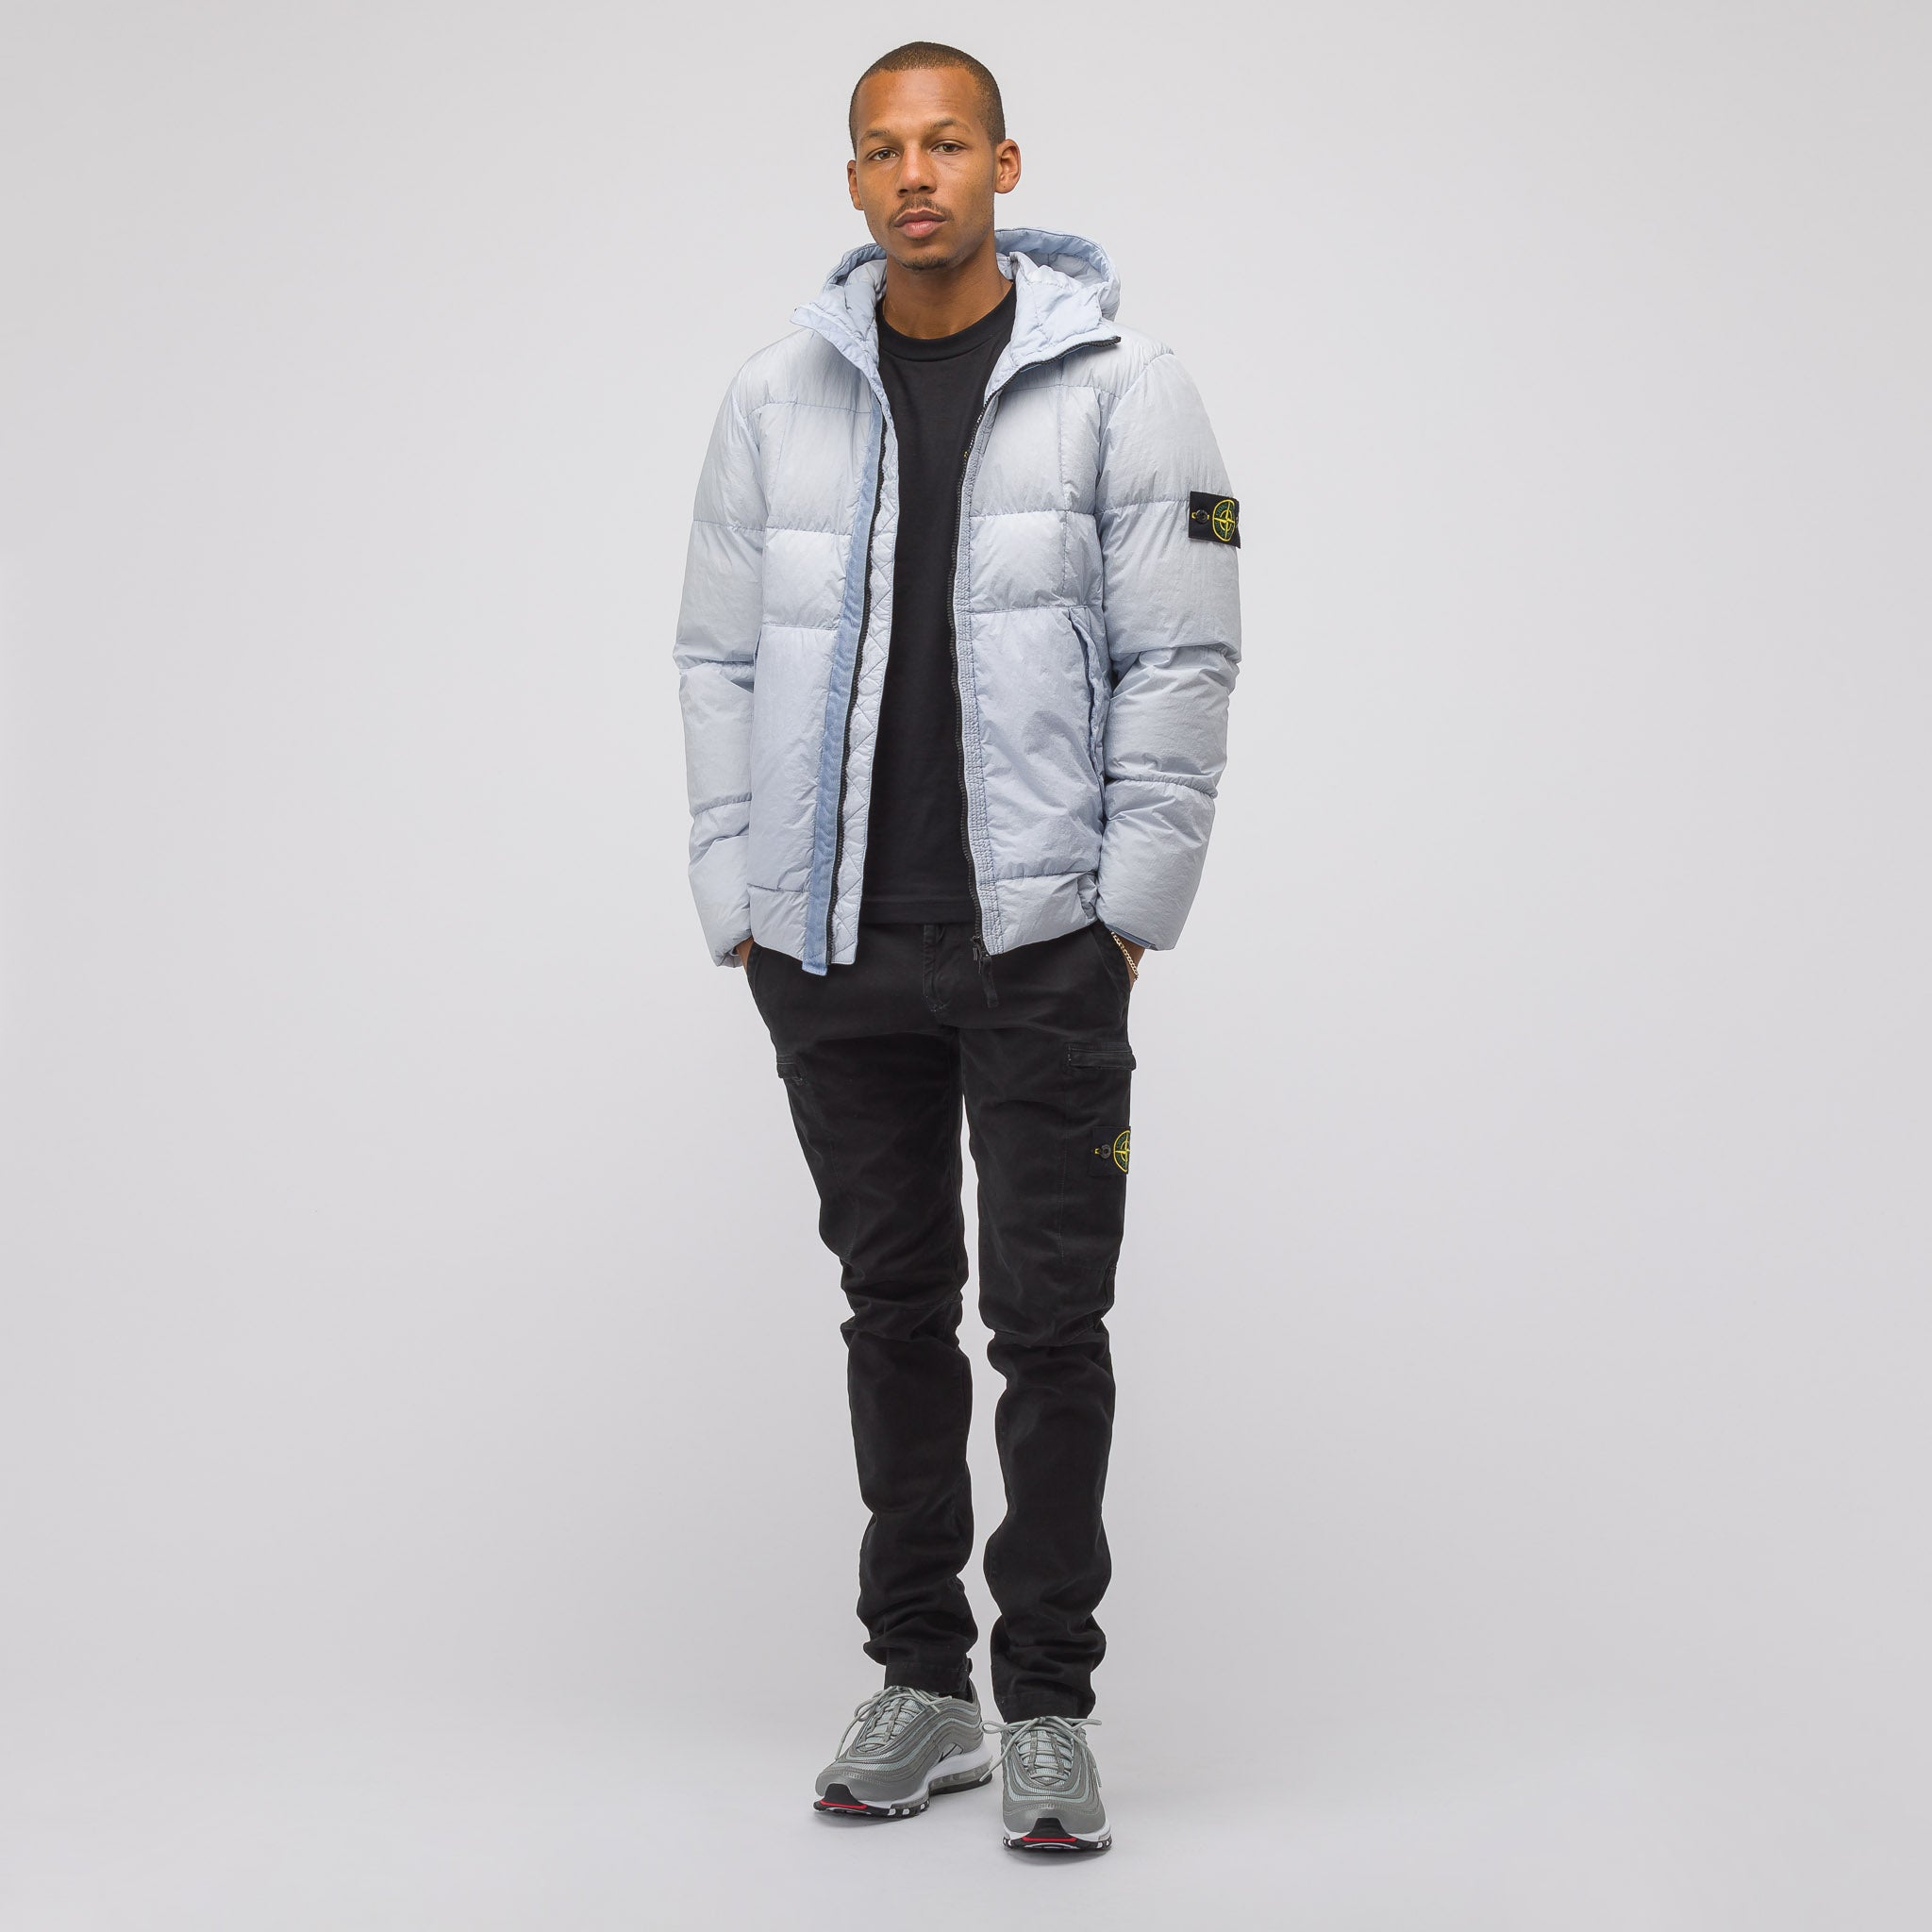 41223 Garment Dyed Crinkle Reps NY Down Jacket in Ice